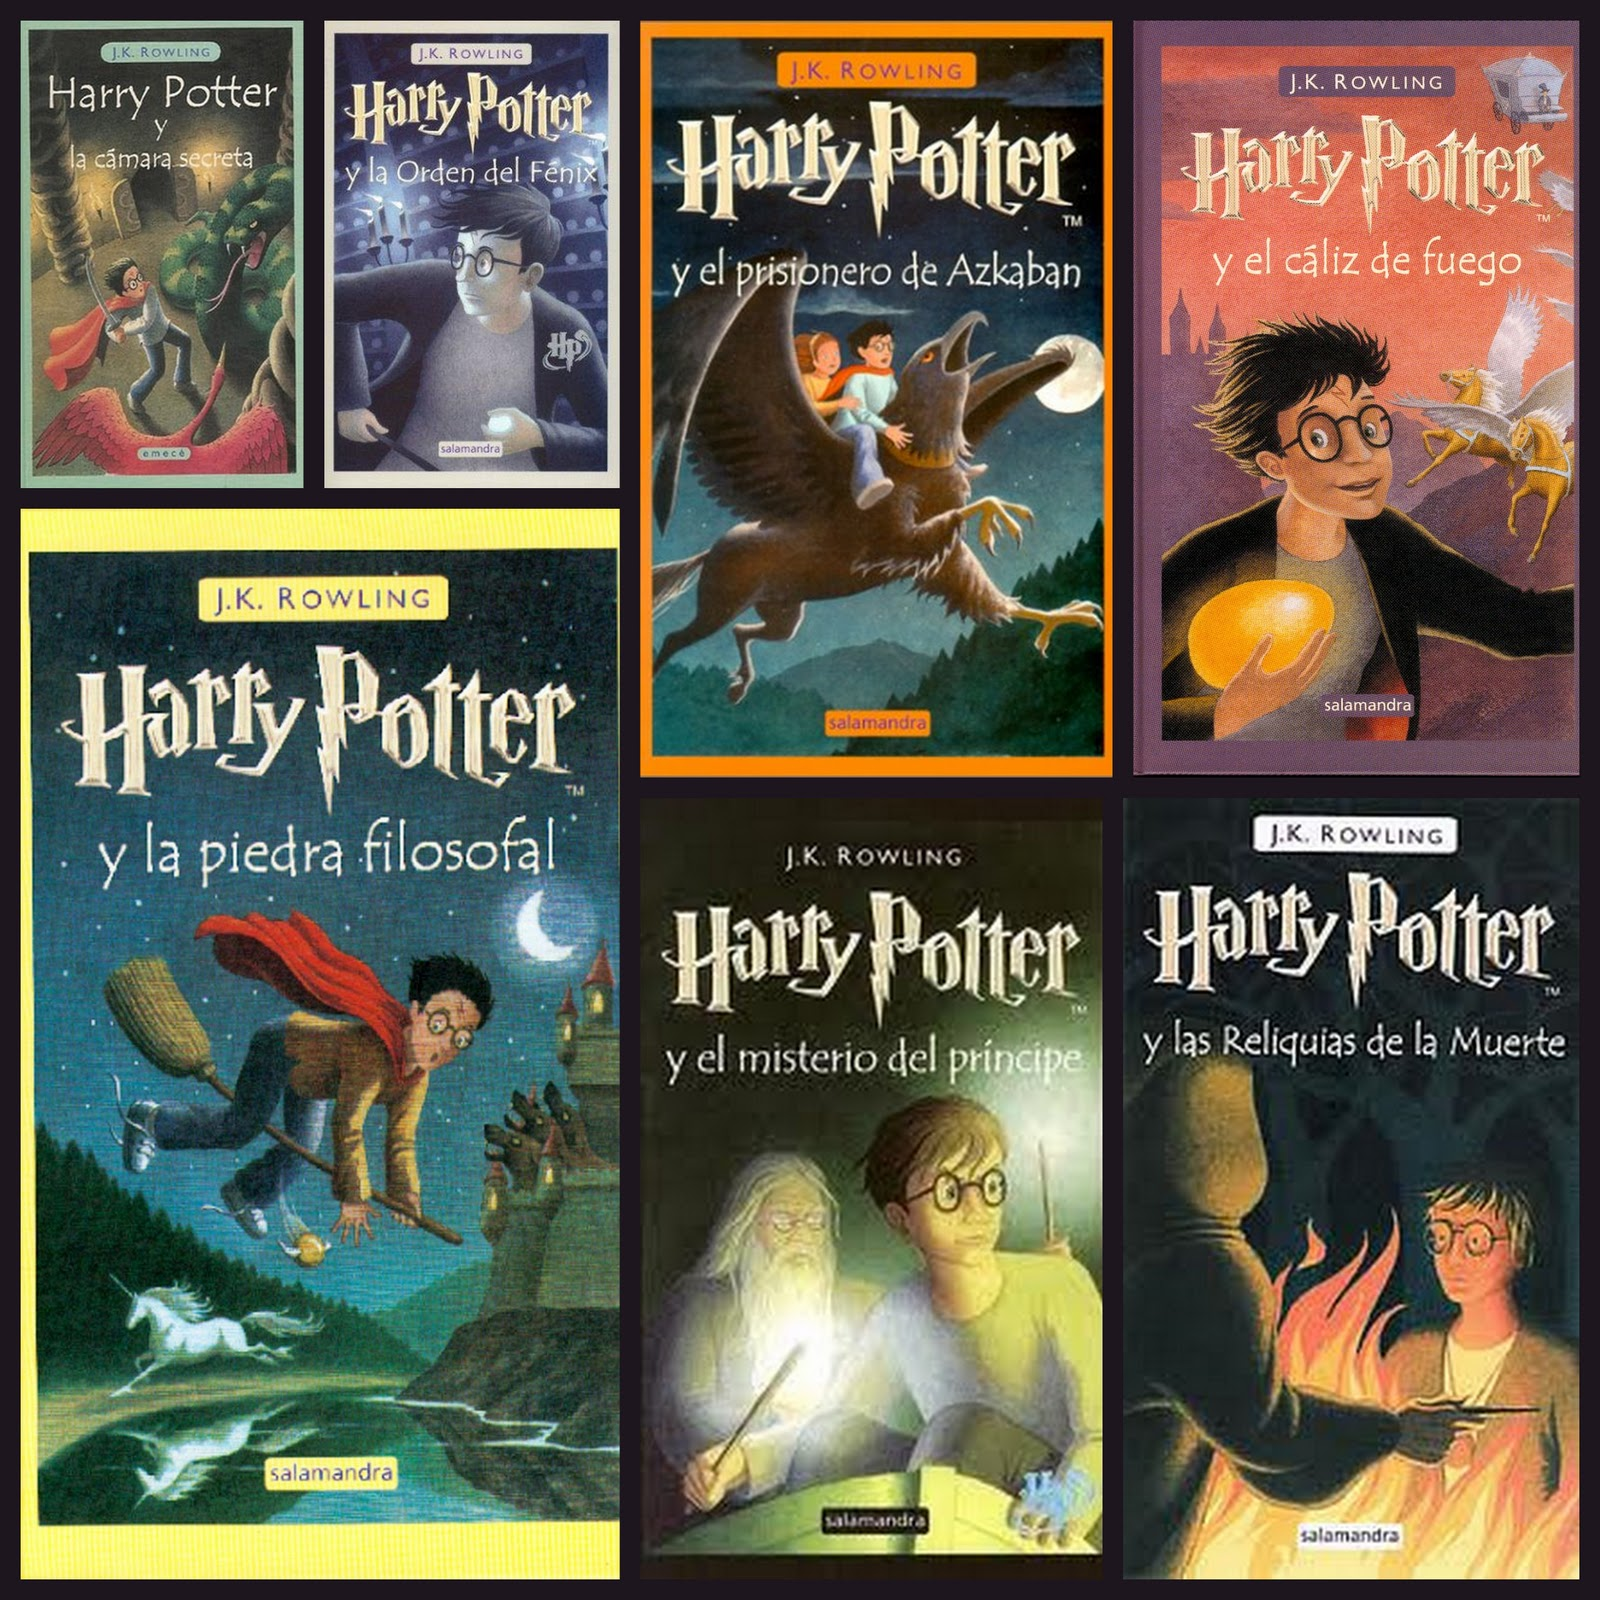 Descargar Libros De Harry Potter Libros De Harry Potter Y Otros En Formato Pdf - Identi